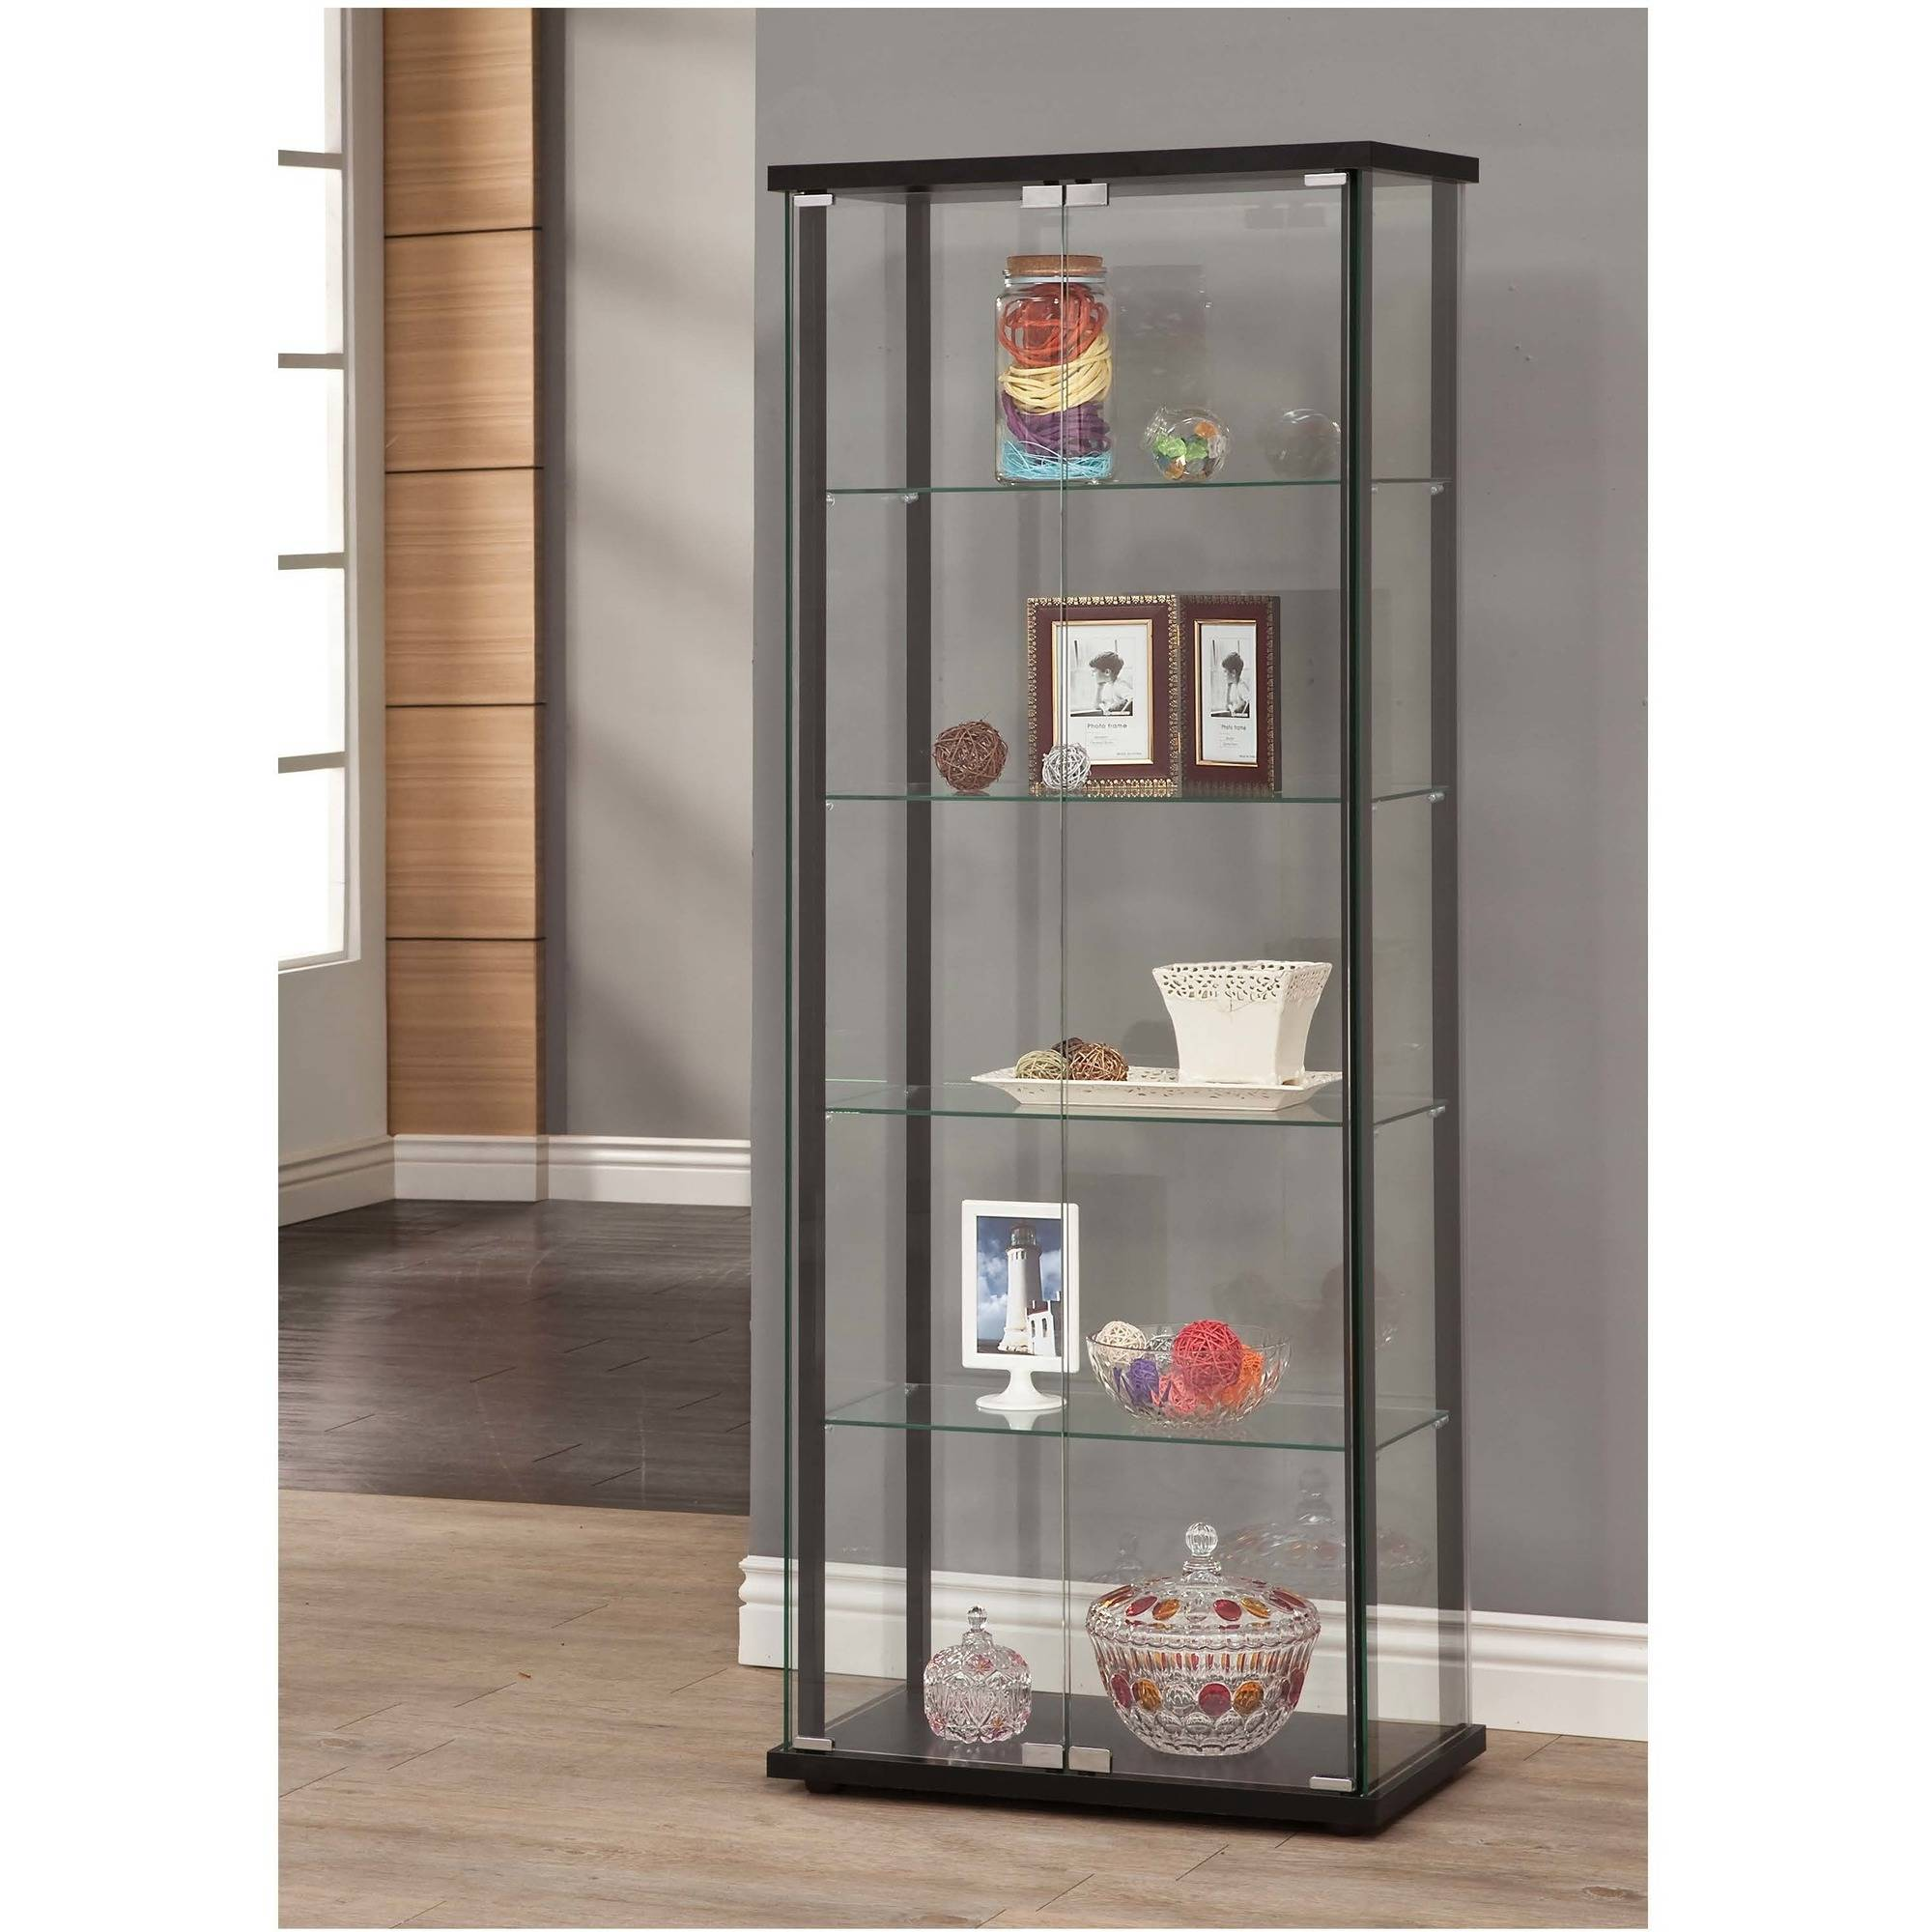 living room glass shelves wood chair cabinet storage furniture corner kitchen home display click thumbnail to enlarge simple black frame tempered